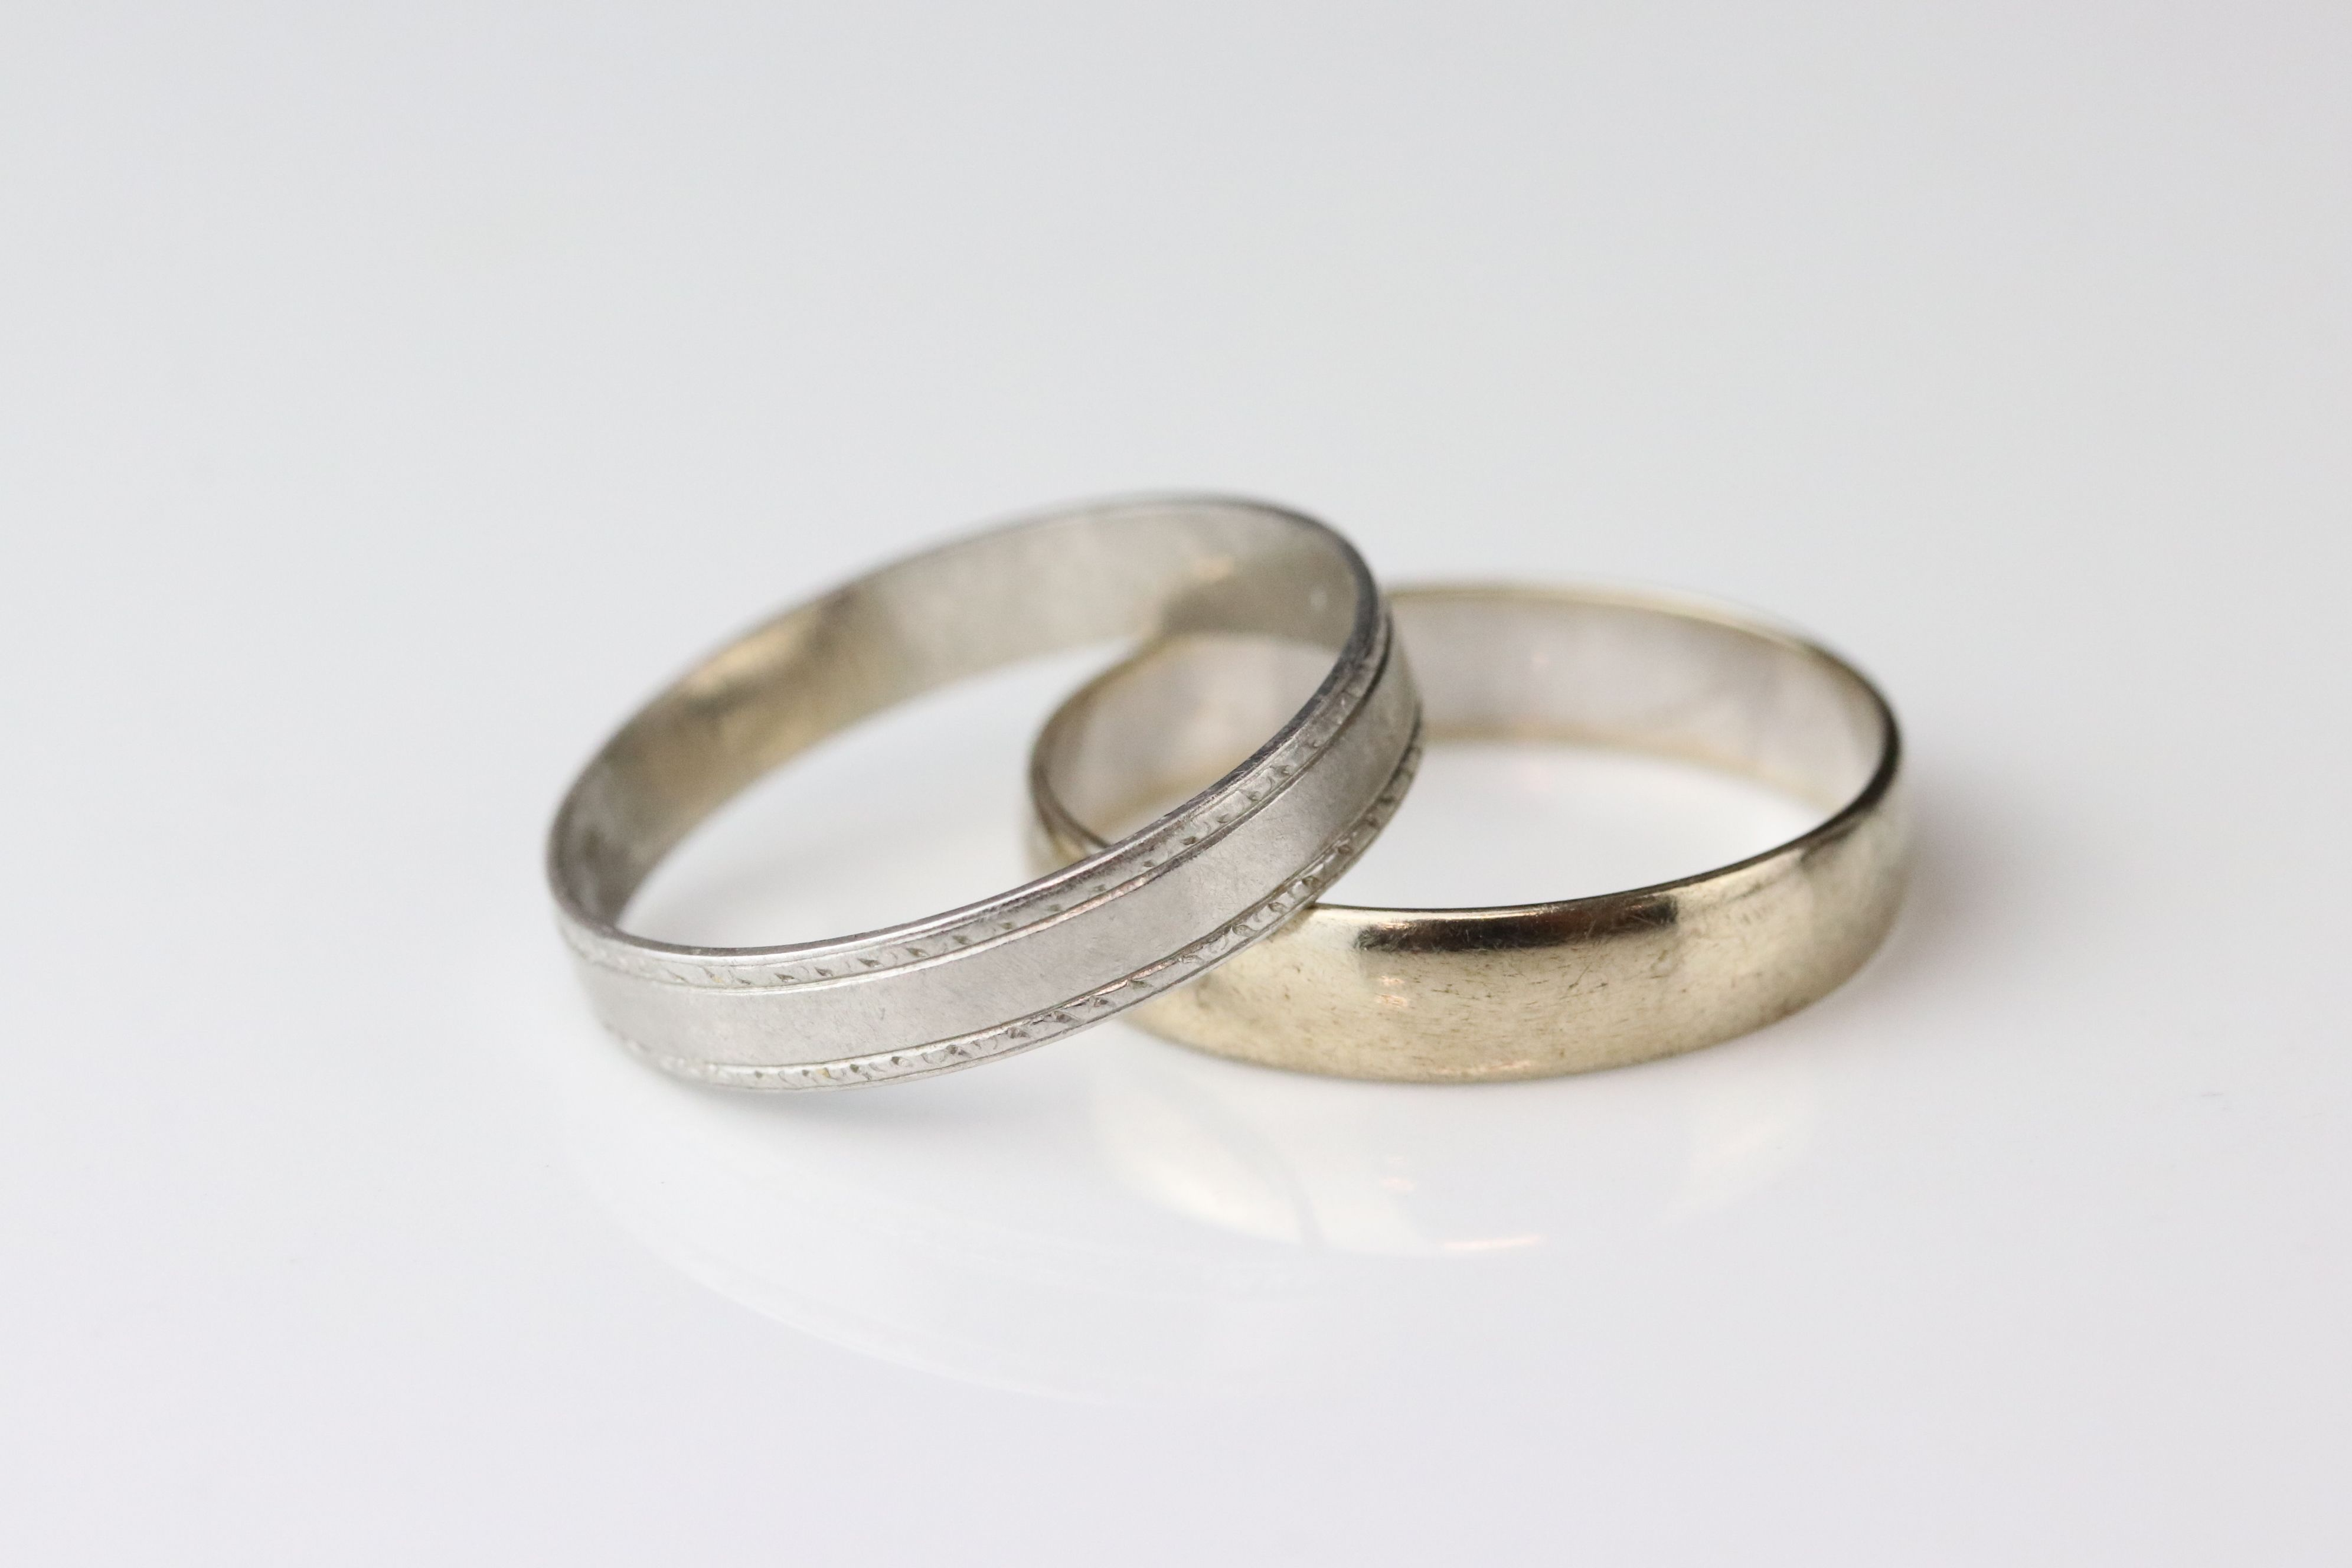 9ct white gold plain polished wedding band, width approx 4mm, ring size R (needs rhodium plating)